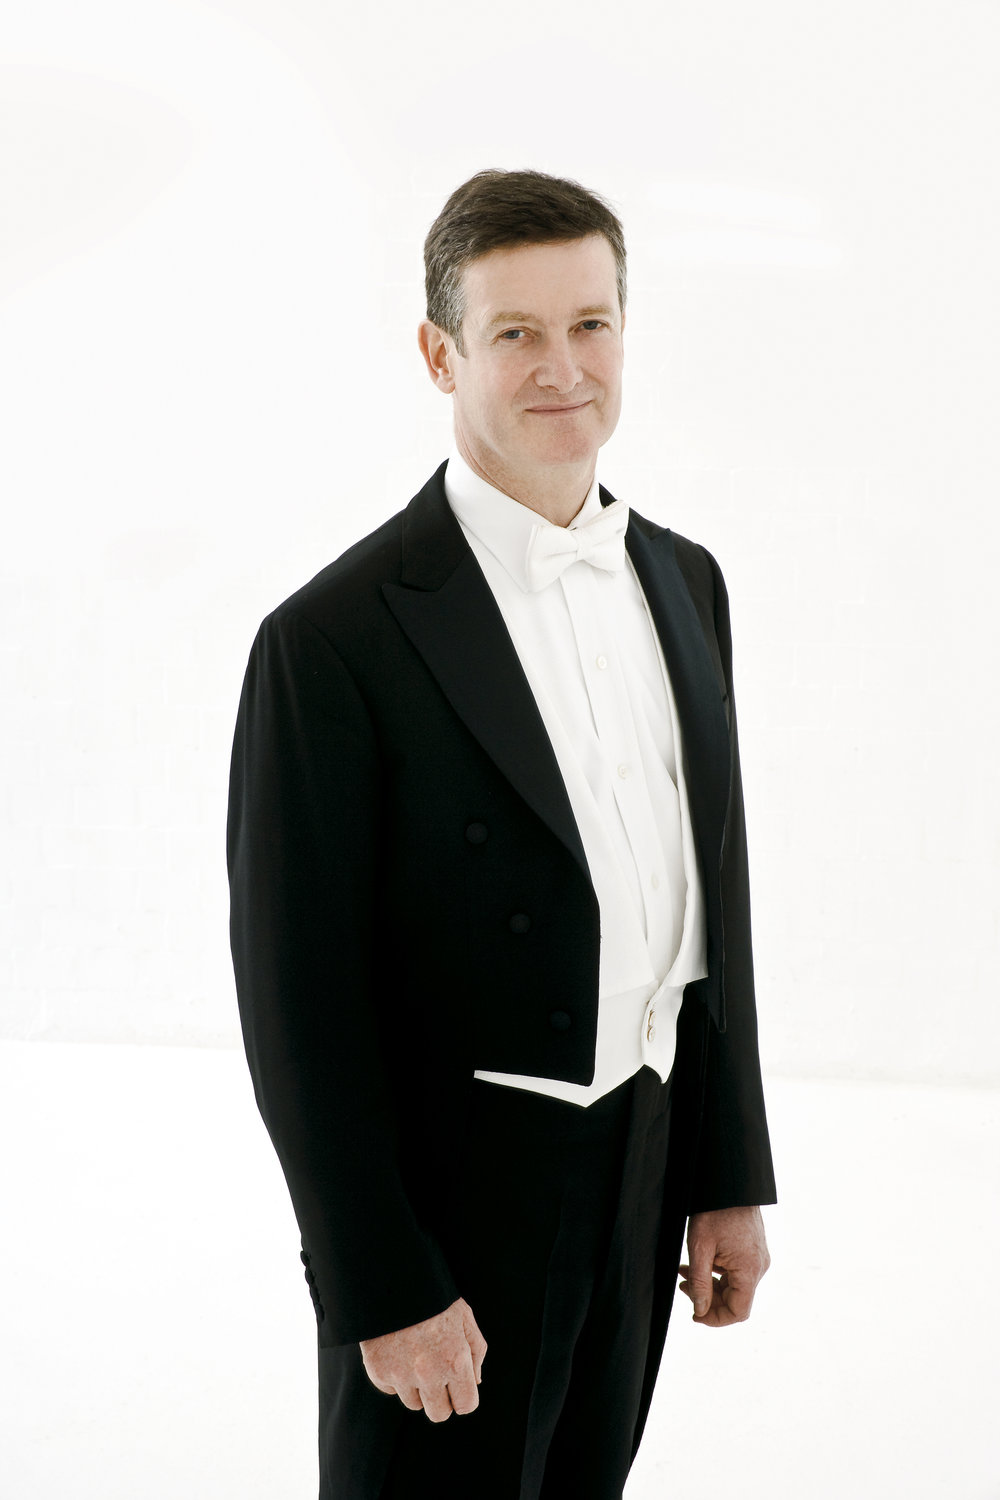 Harry Bicket, Artistic Director of The English Concert